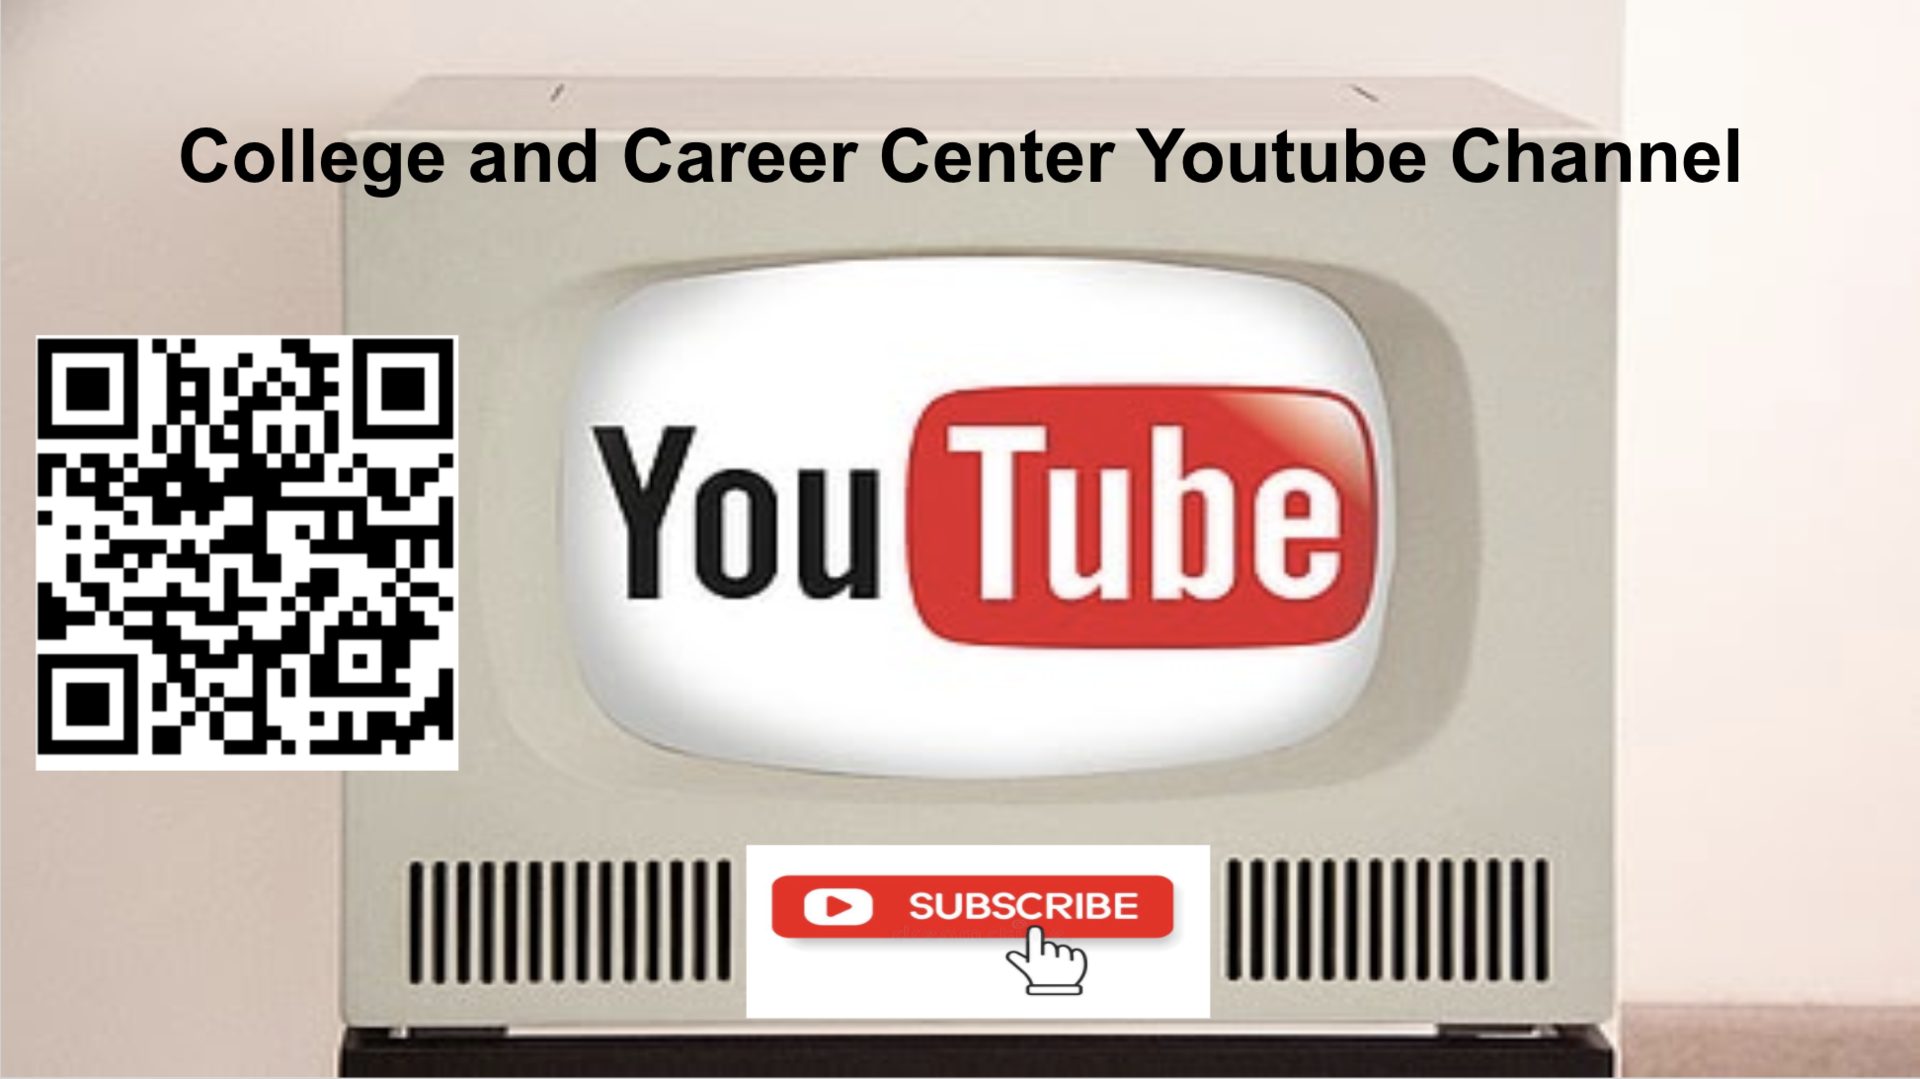 college and career center youtube channel qr code